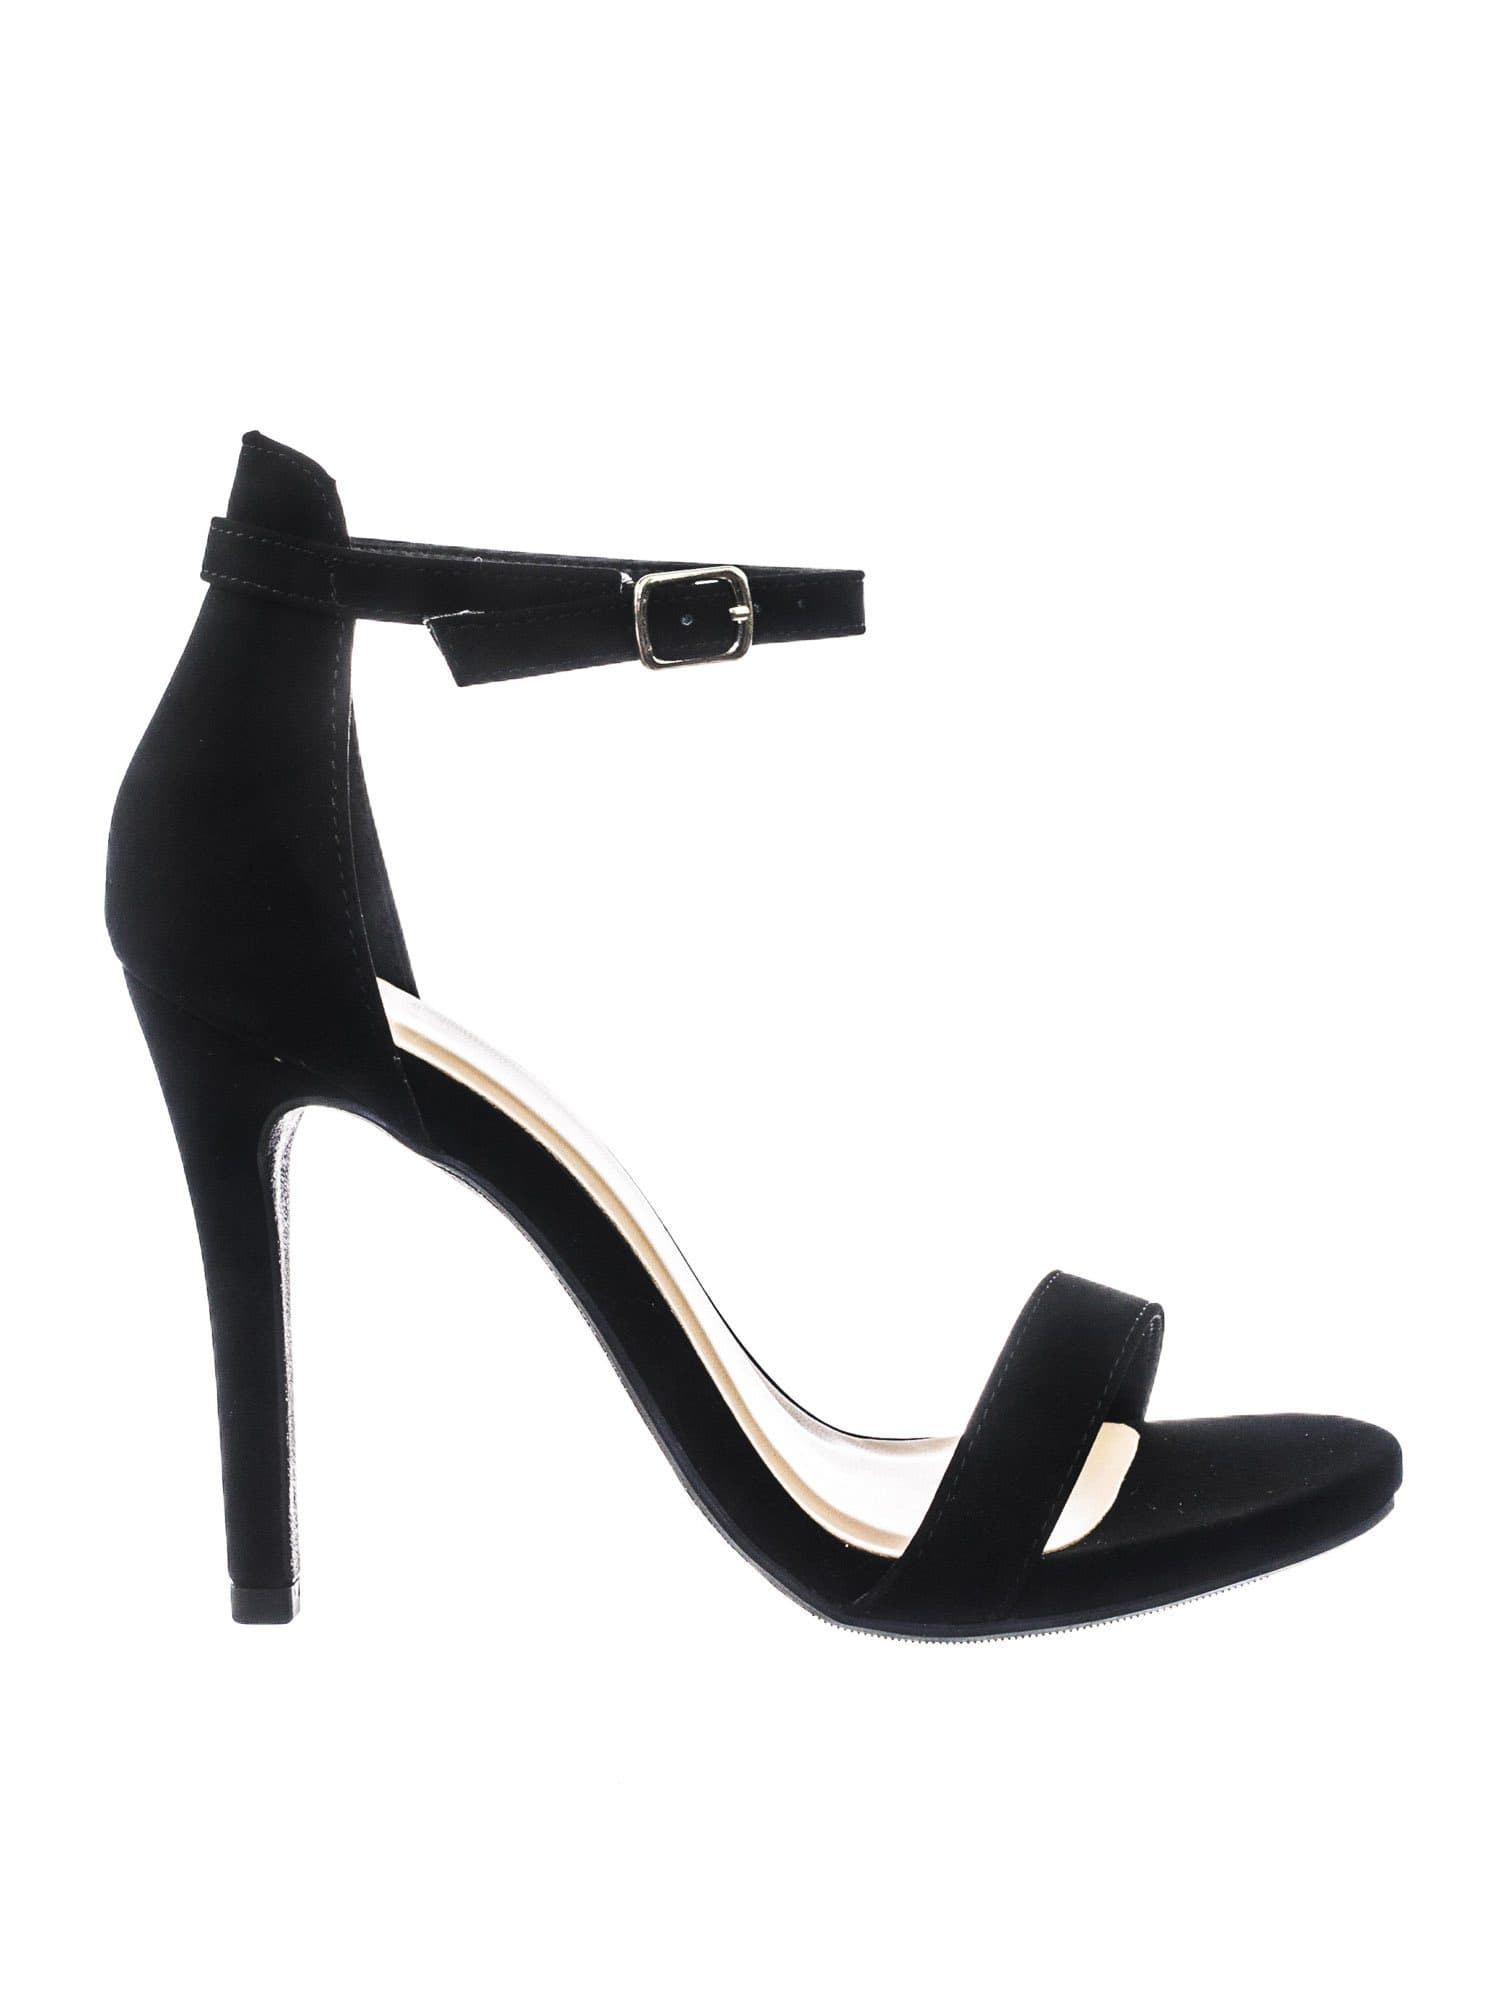 Tyrell Black Classic Womens Open Toe High Heel Dress Sandal w Adjustable Ankle Strap